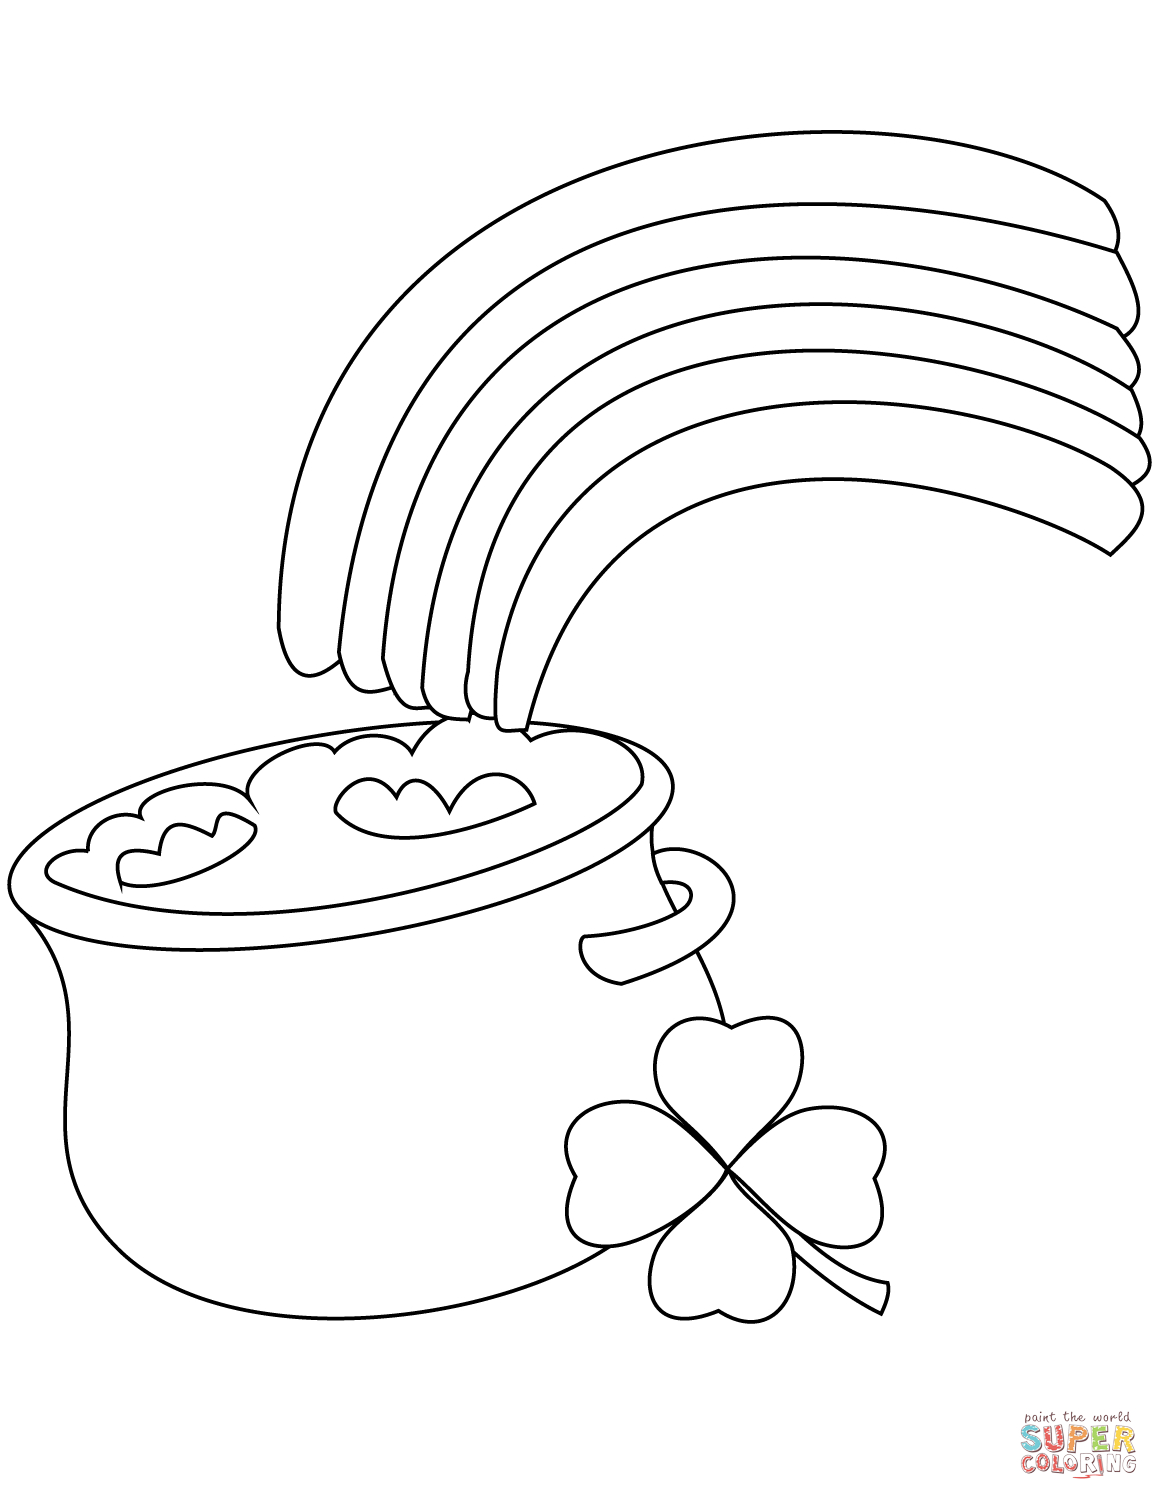 Rainbow And Pot Of Gold Coloring Page | Free Printable Coloring Pages - Free Printable Pot Of Gold Coloring Pages